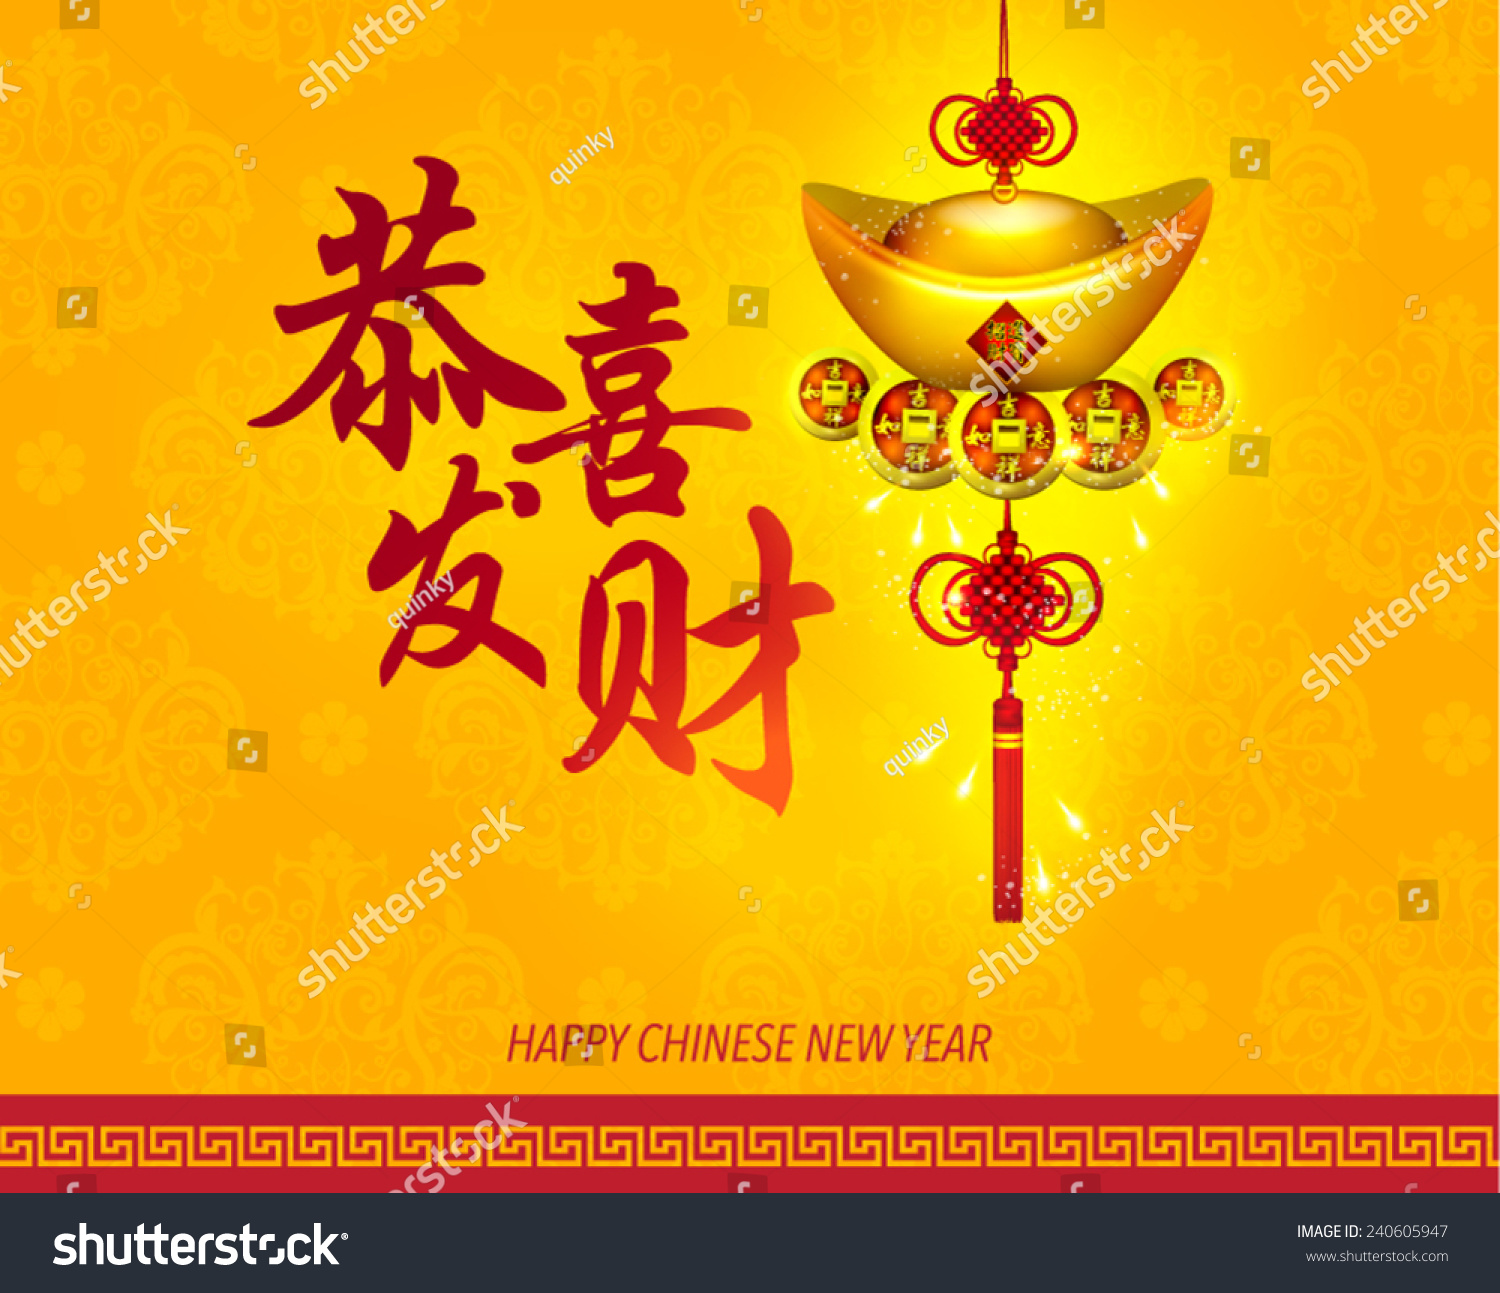 Happy Chinese New Year Greetings Vector Design Chinese Translation